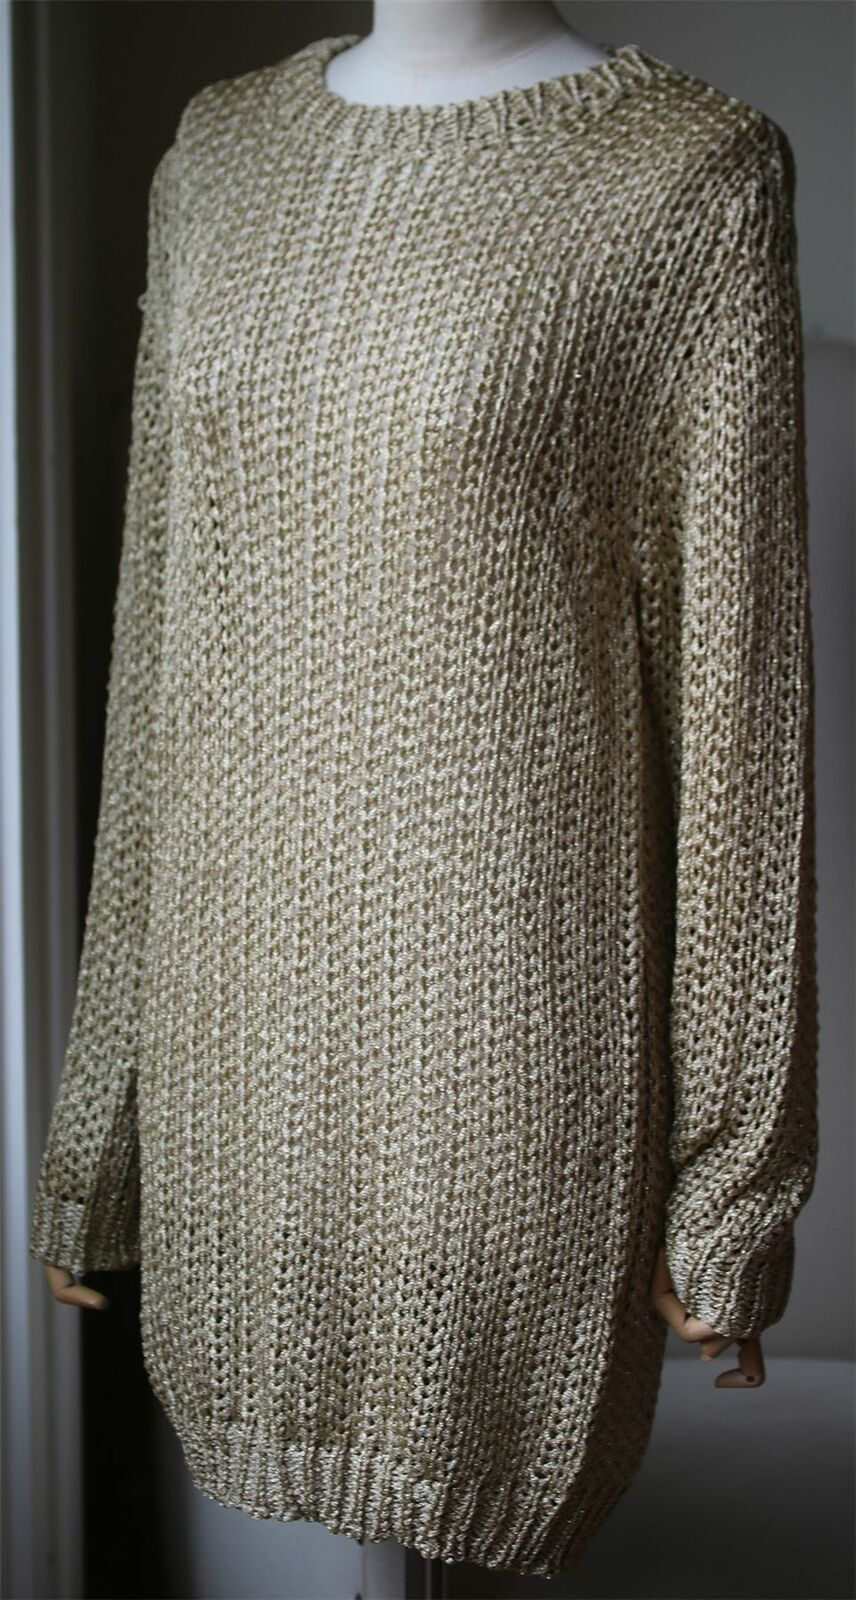 JOSEPH METALLIC METALLIC METALLIC OPEN KNIT SWEATER MEDIUM 8a132f